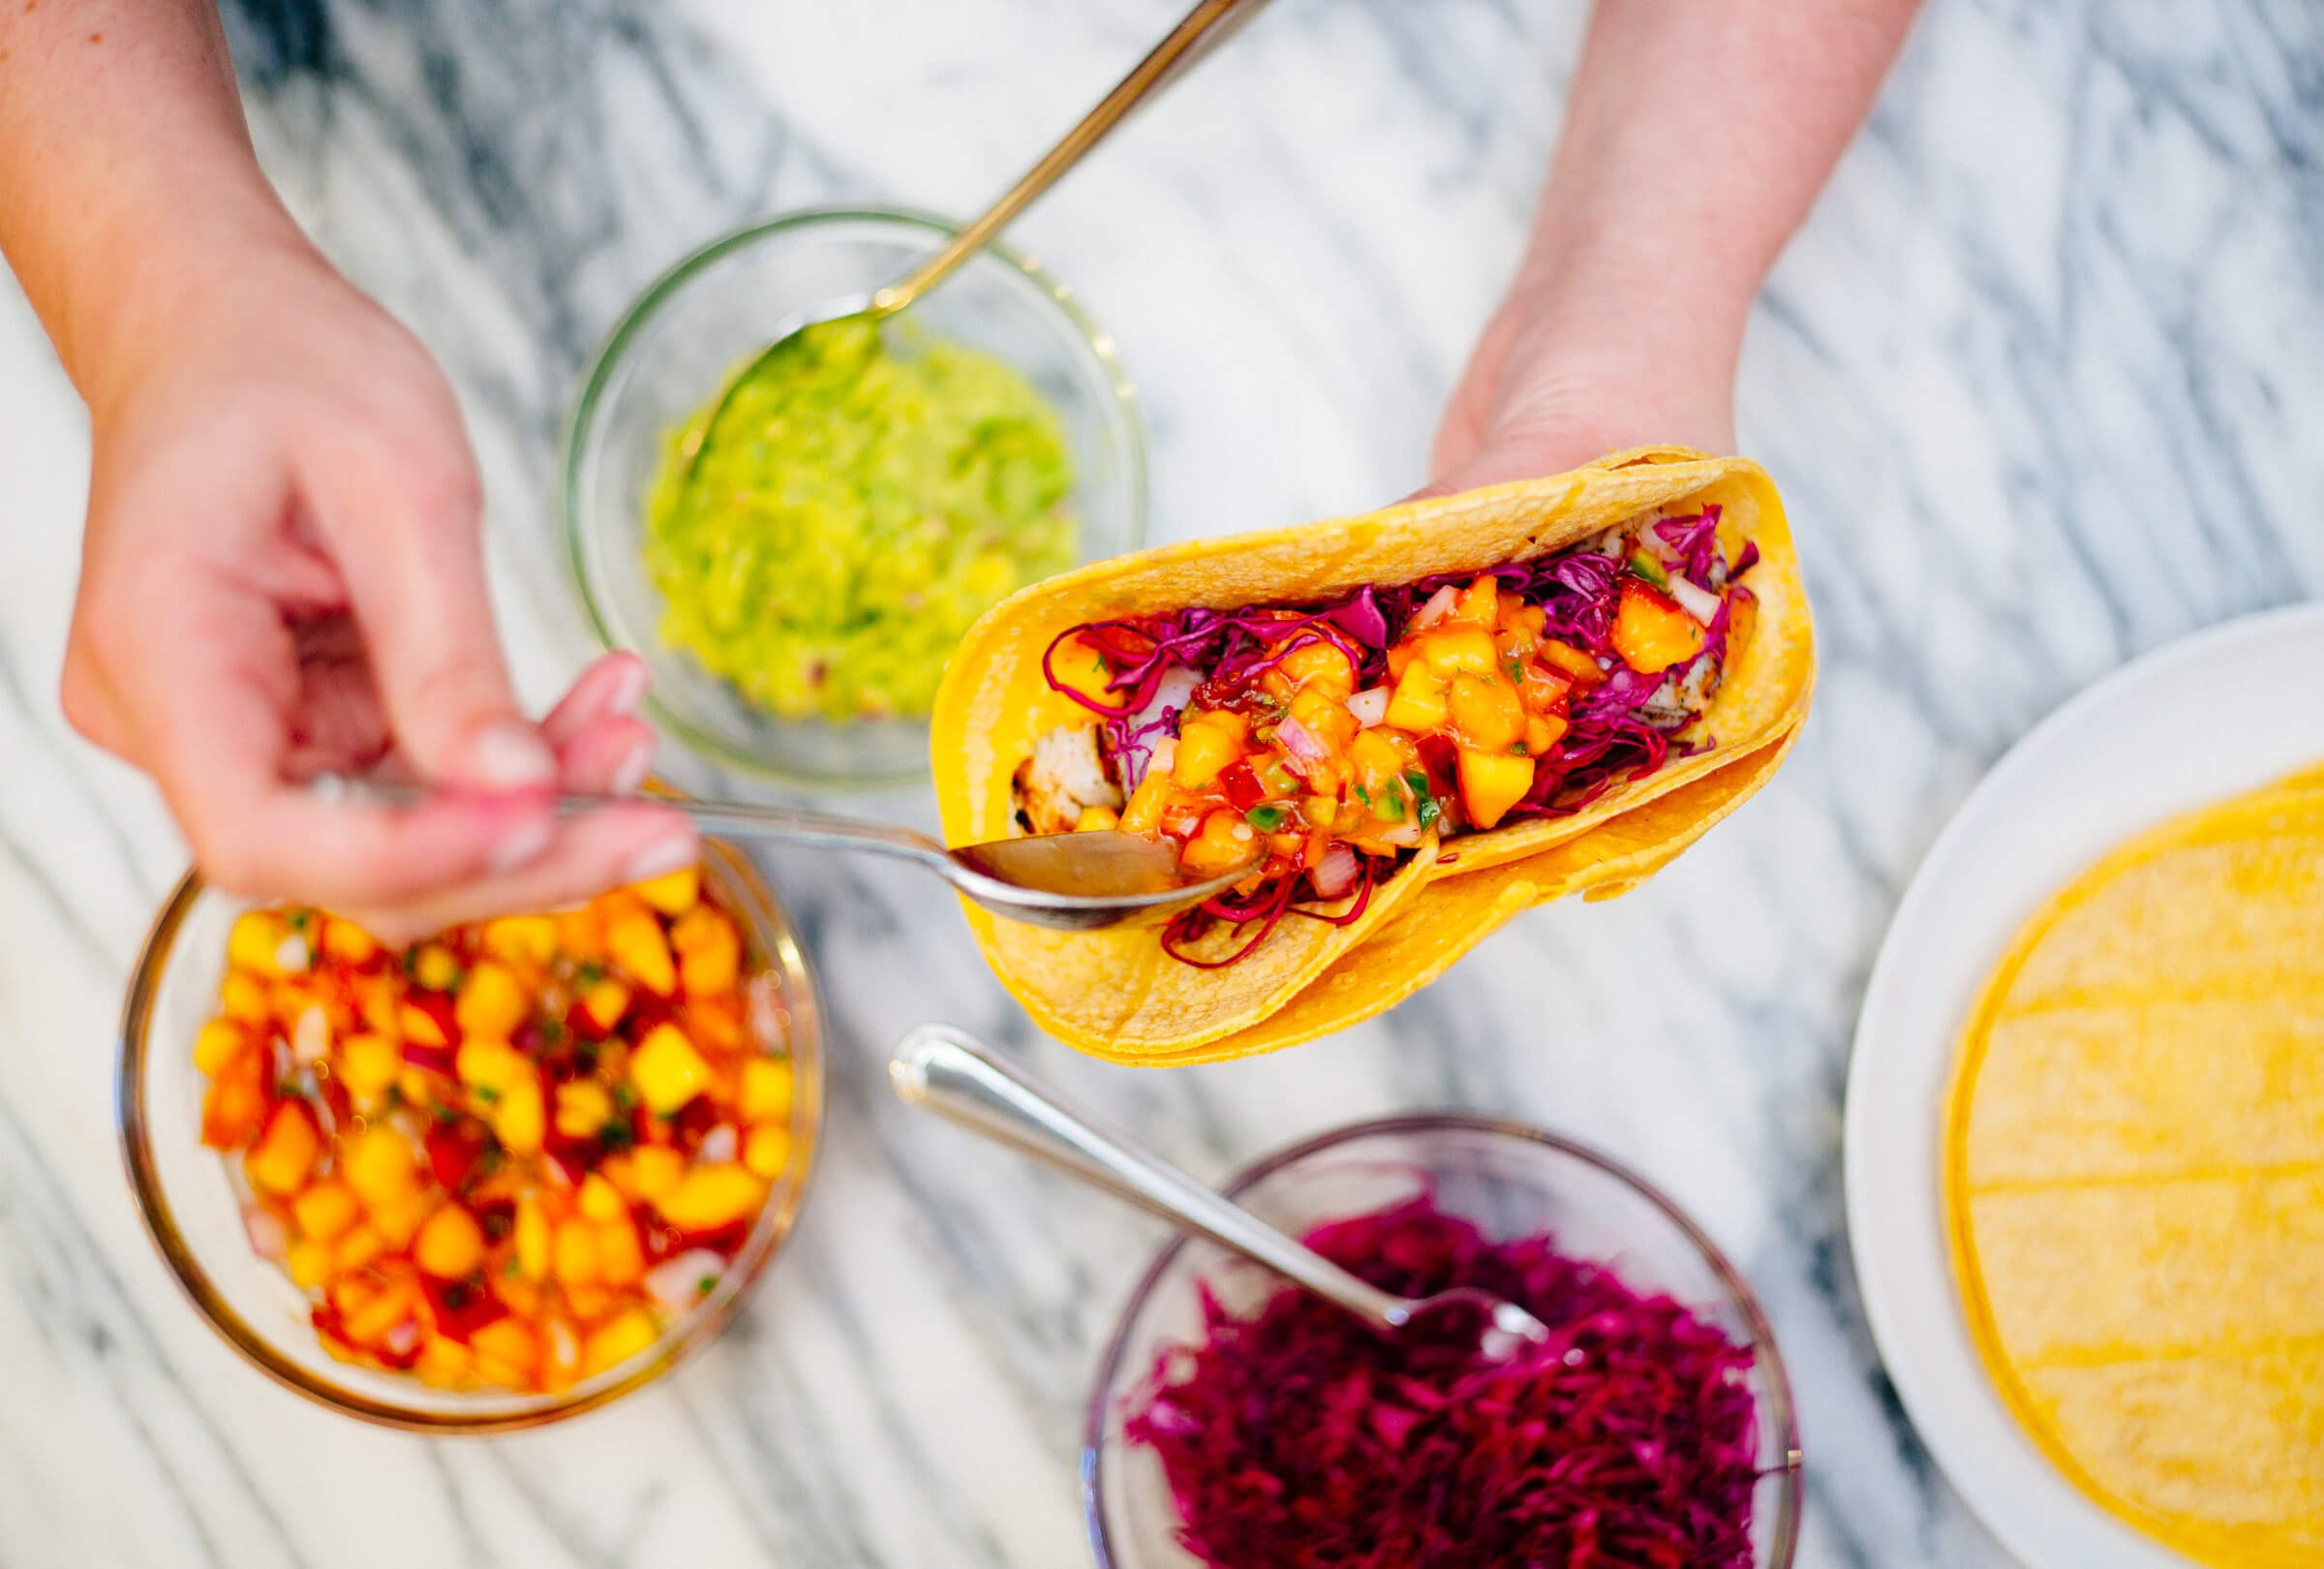 Shrimp tacos with peach salsa and toppings is perfect for summer